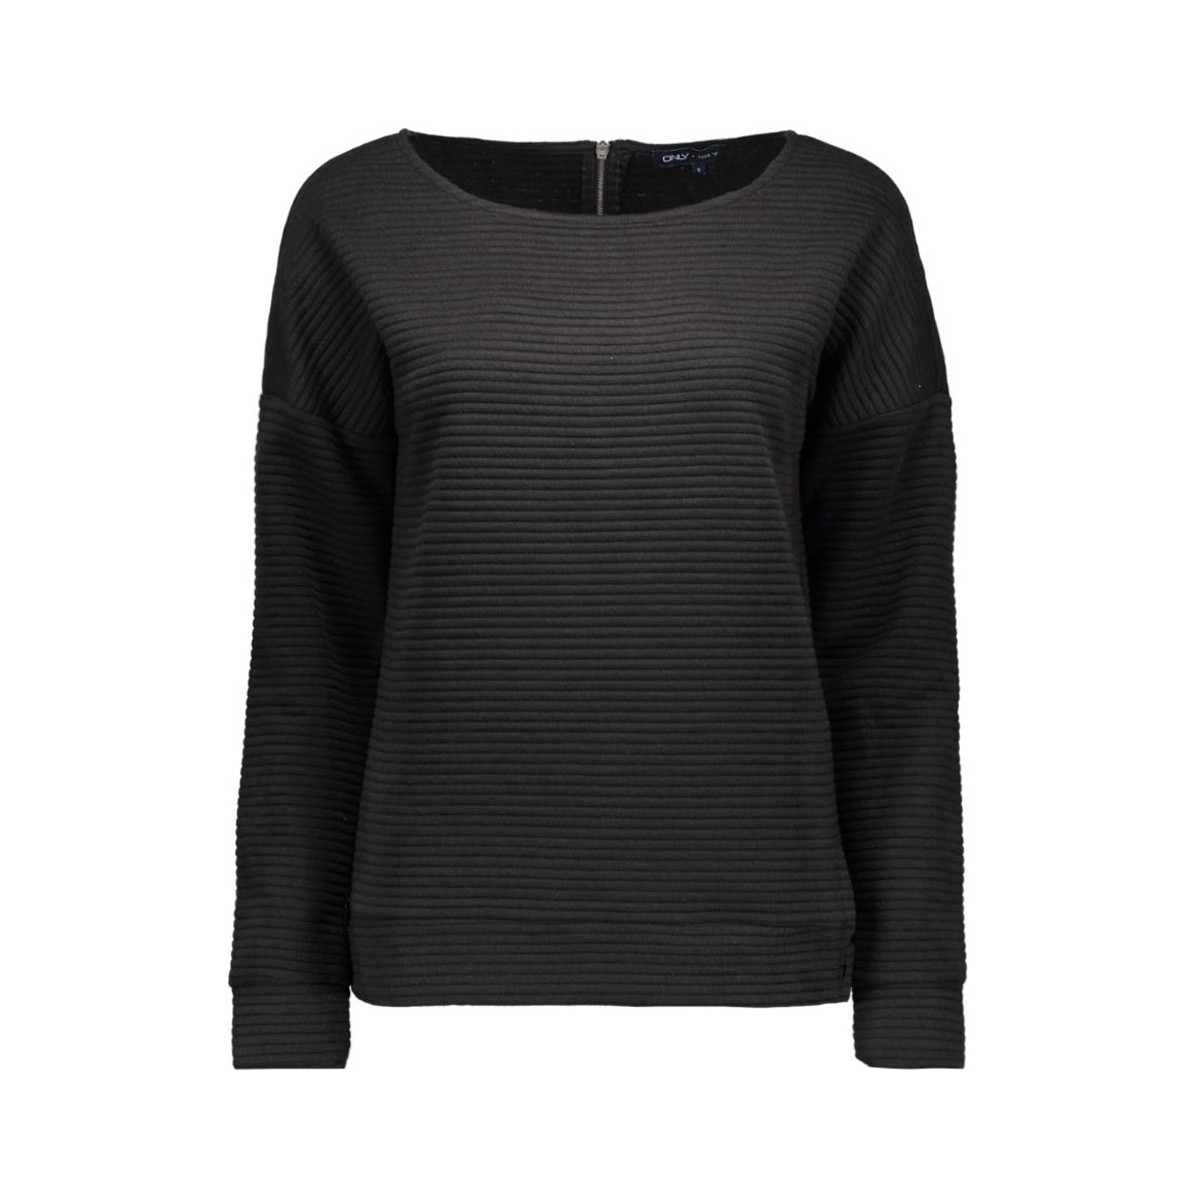 onlvivid l/s jacquard swt 15122322 only sweater black